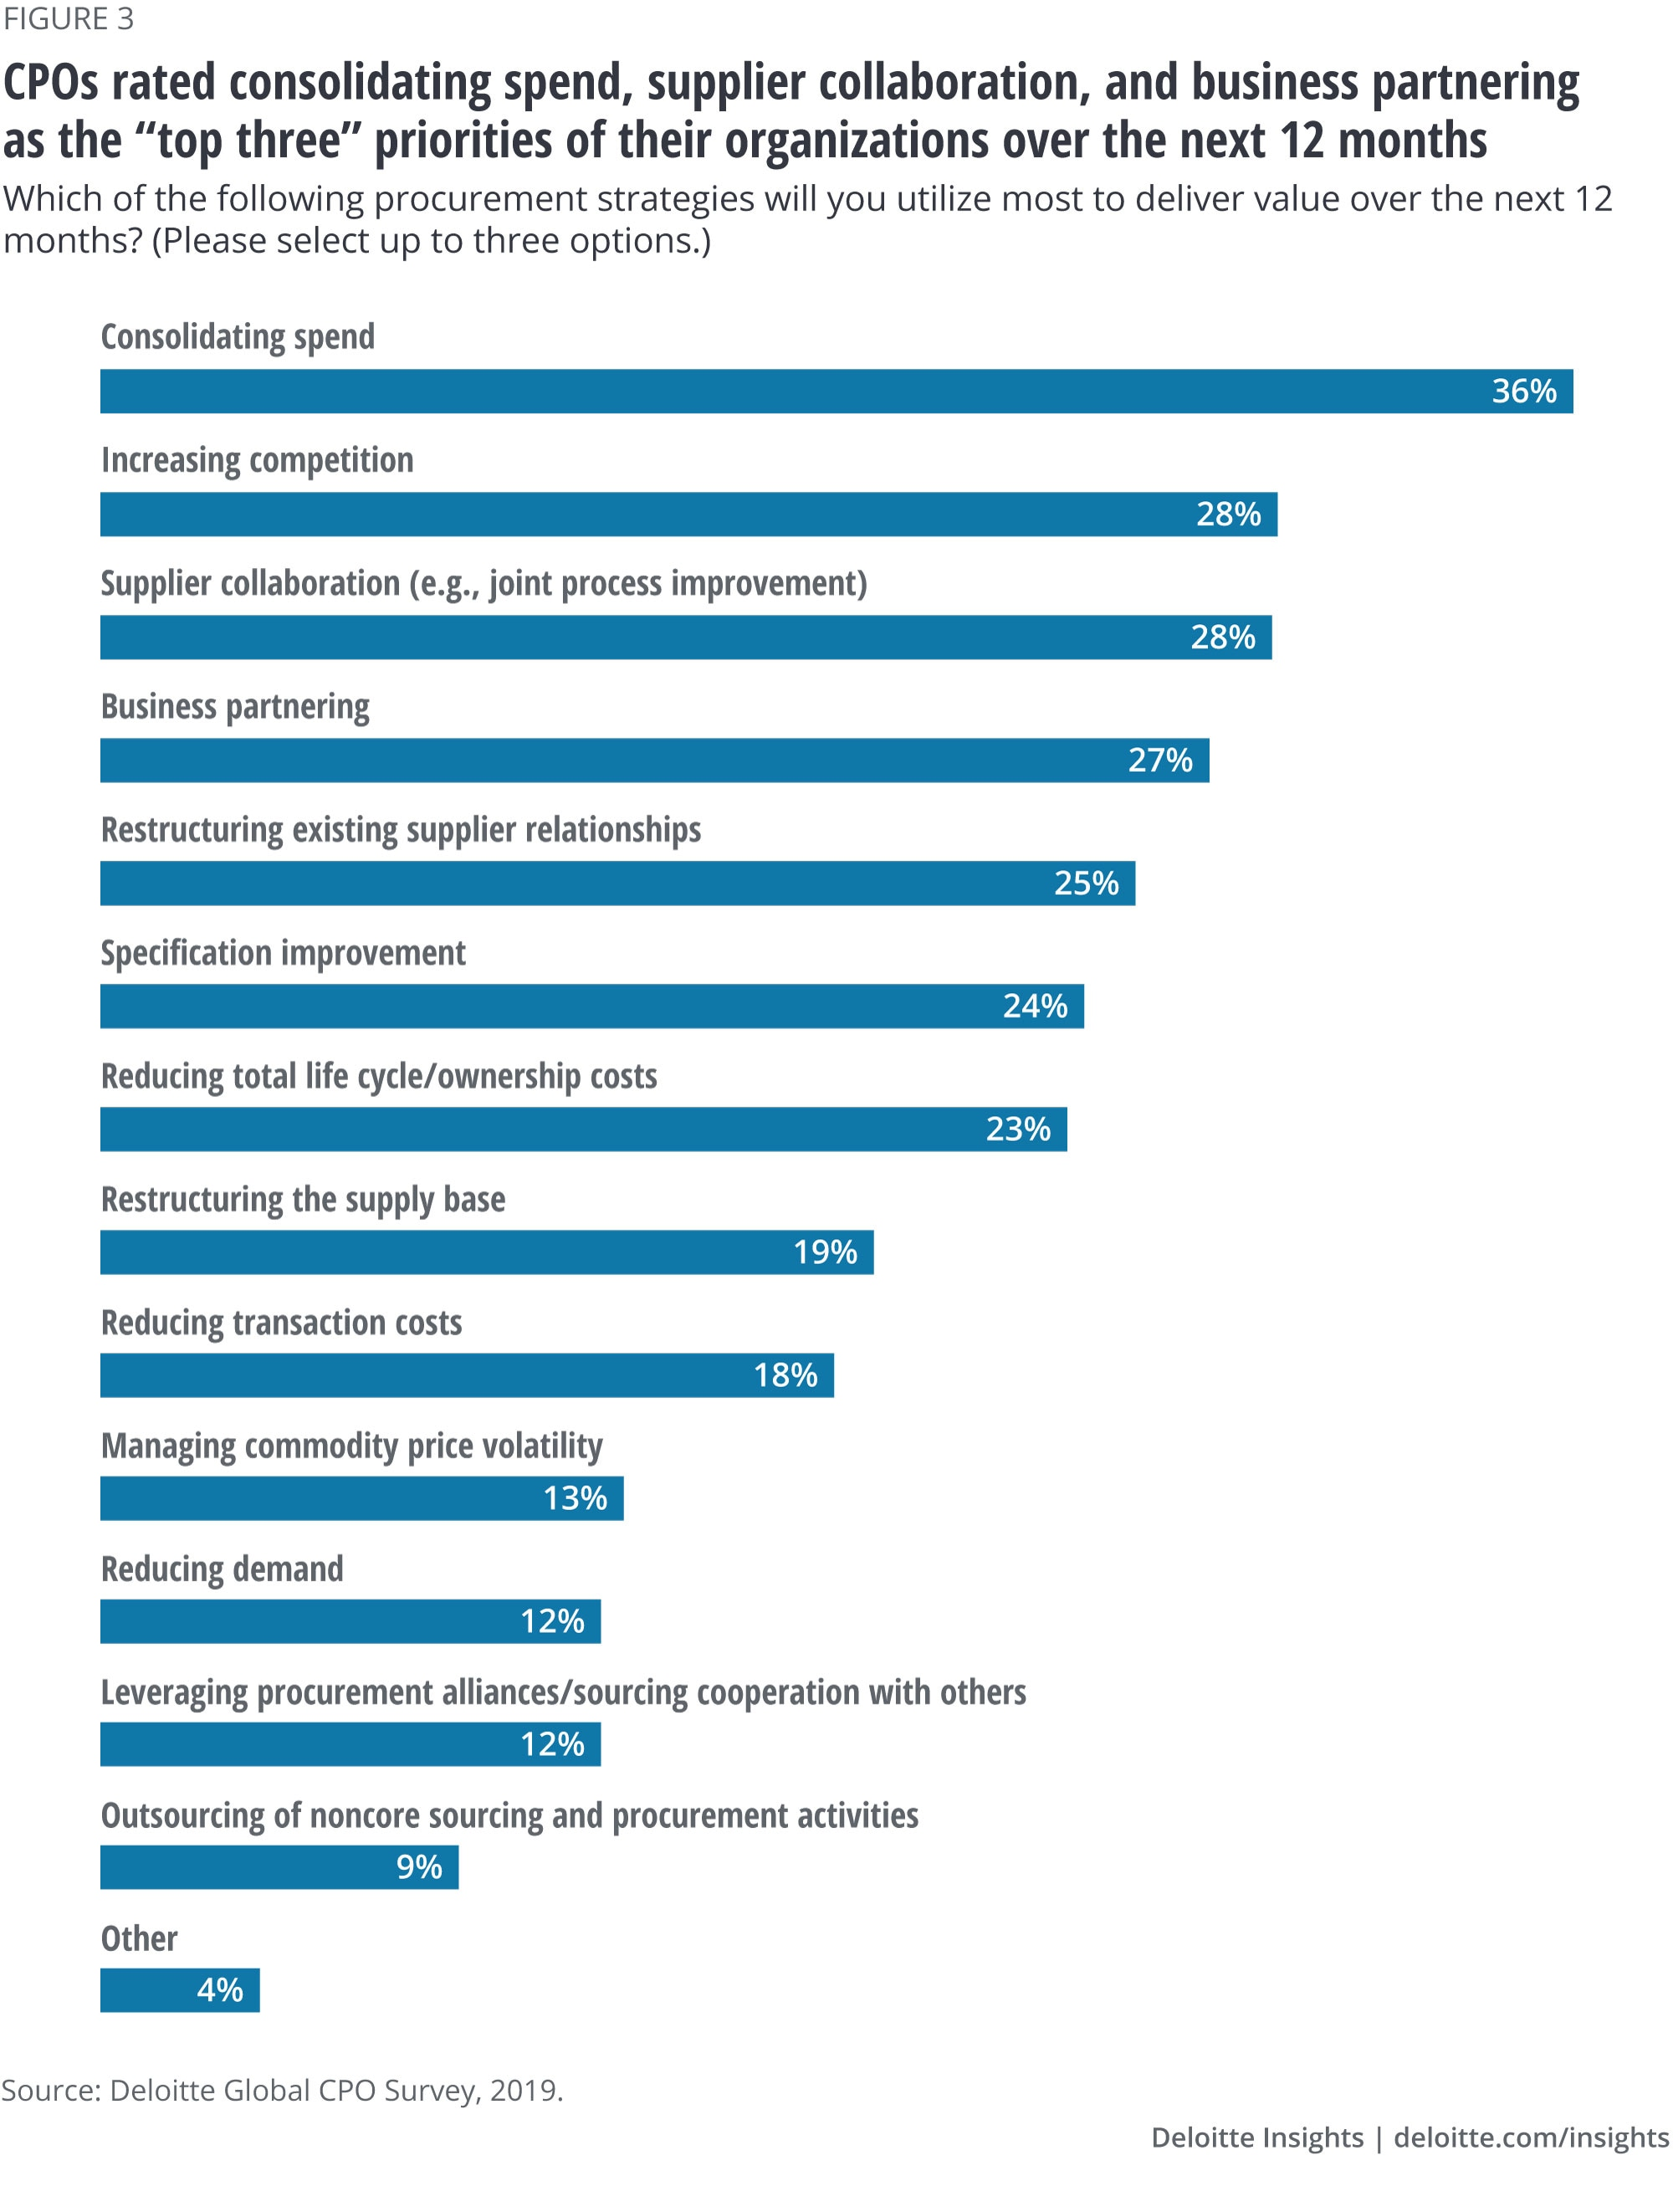 CPOs rated consolidating spend, supplier collaboration, and business partnering as the top three priorities of their organizations over the next 12 months